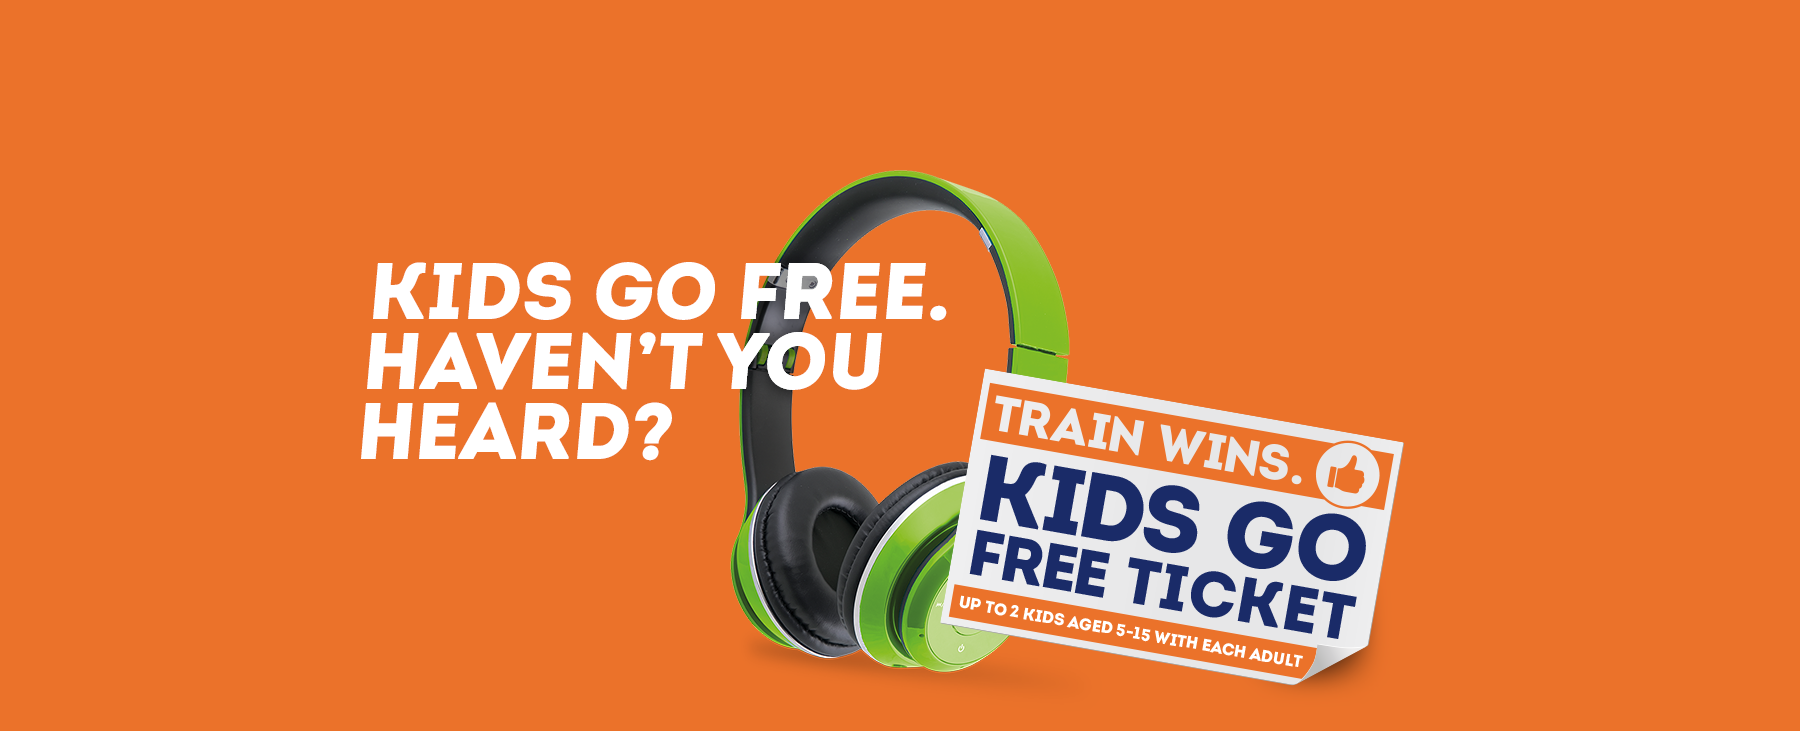 Kids go free. Up to 2 kids aged 5-15 with each adult ticket.